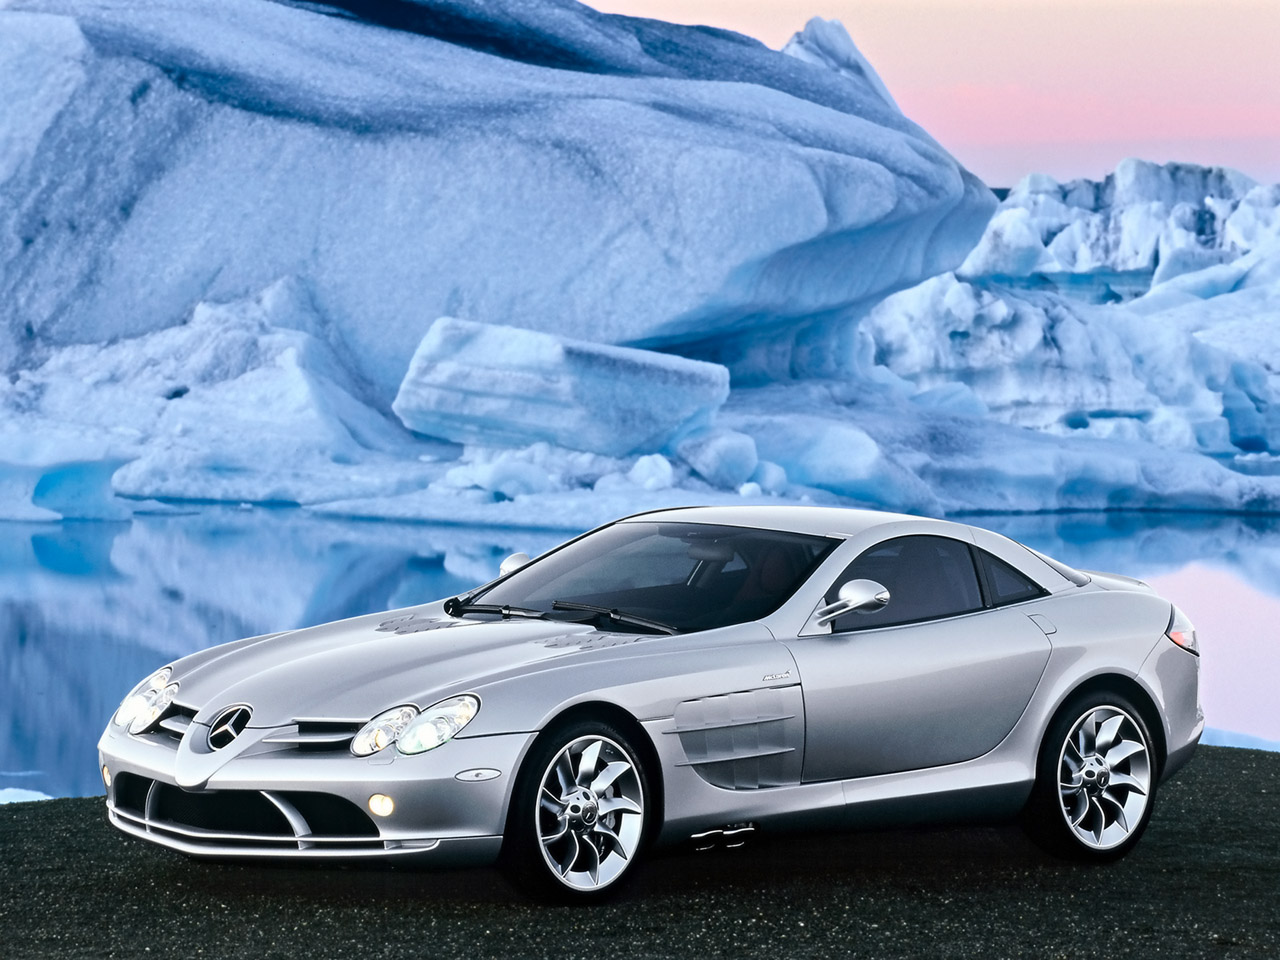 World of cars mercedes benz slr image for Autos mercedes benz